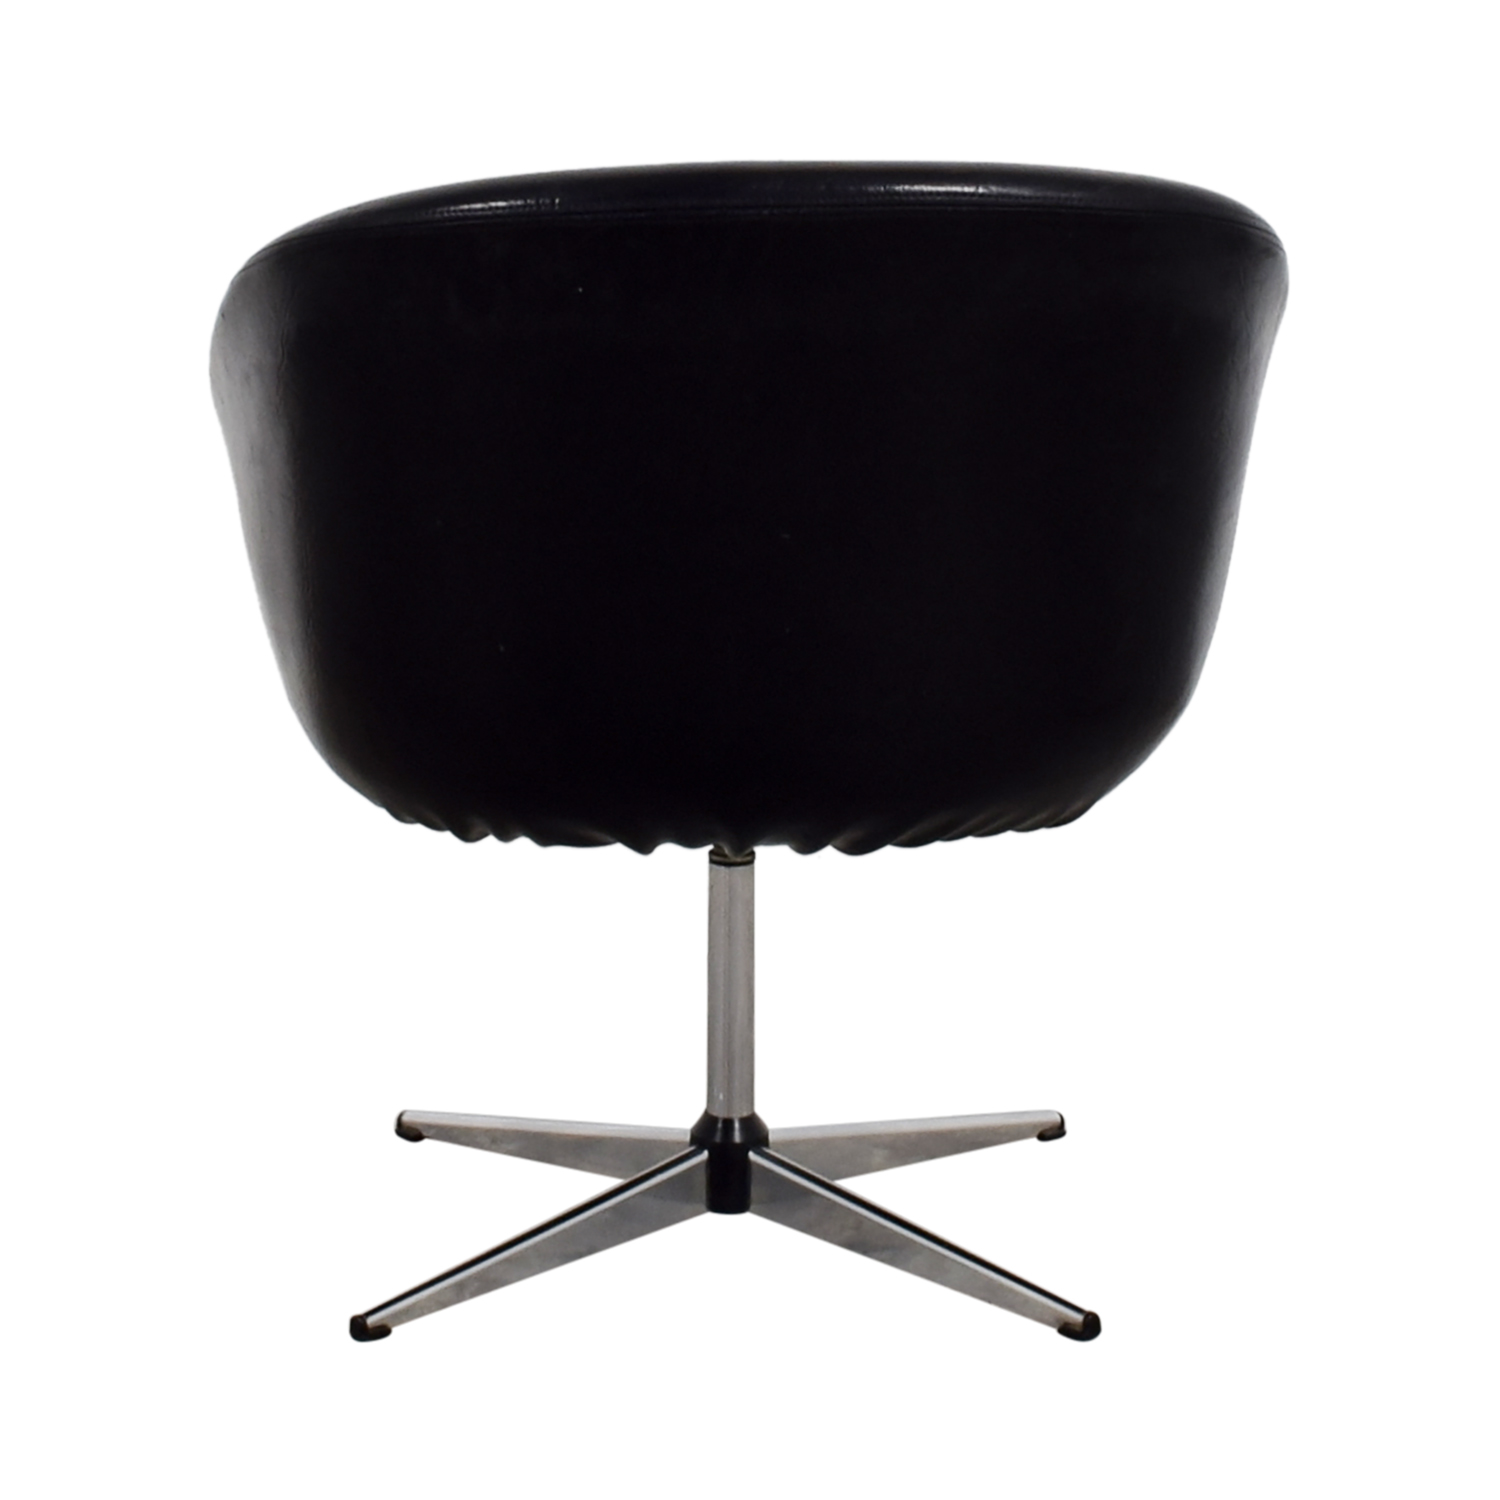 By Design By Design Modern Black Revolving Chair nj